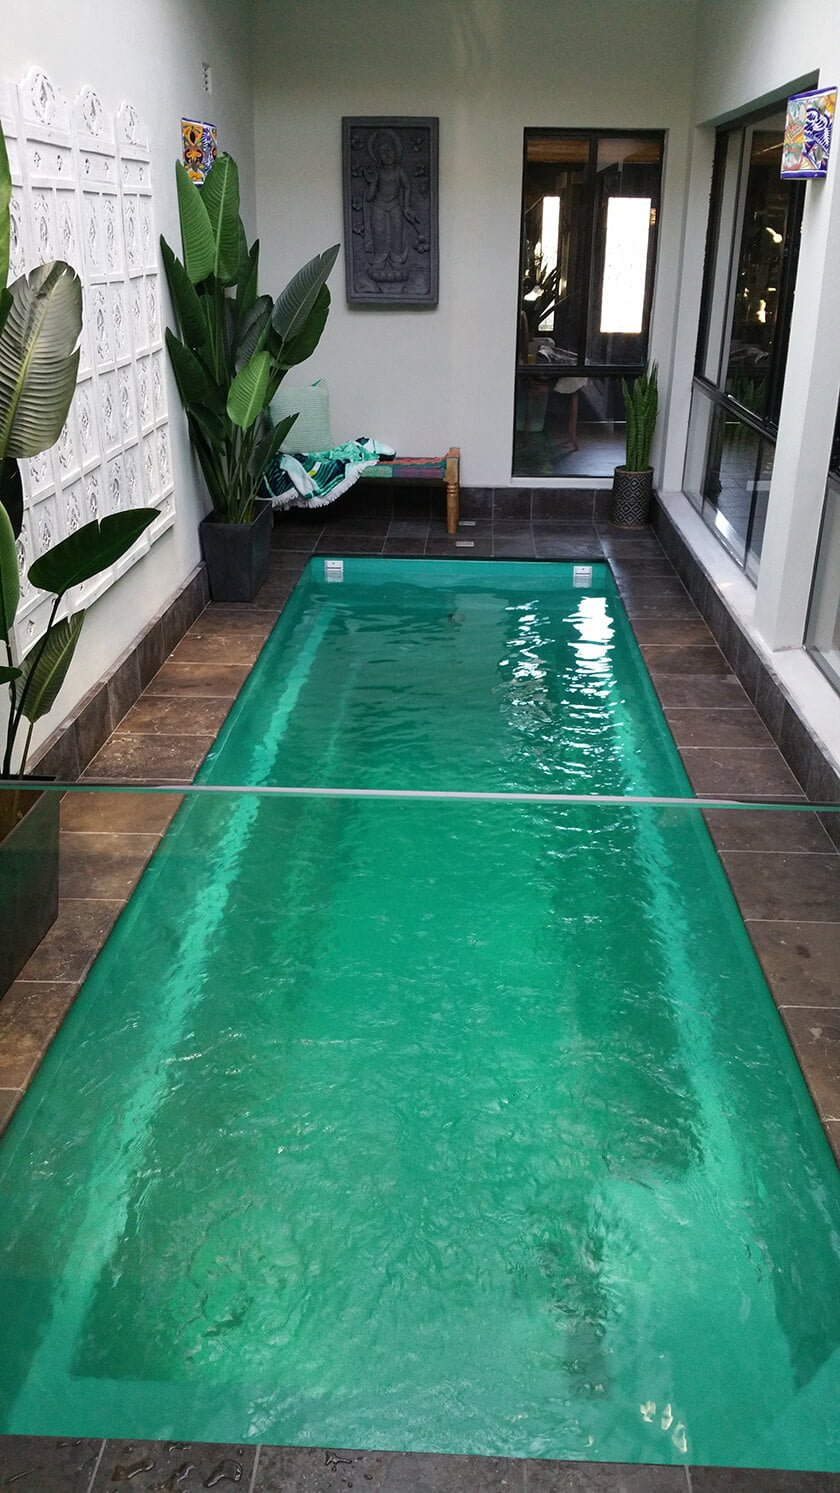 https://www.miamipools.com.au/wp-content/uploads/2019/01/miami_green_shimmer2-1-1.jpg